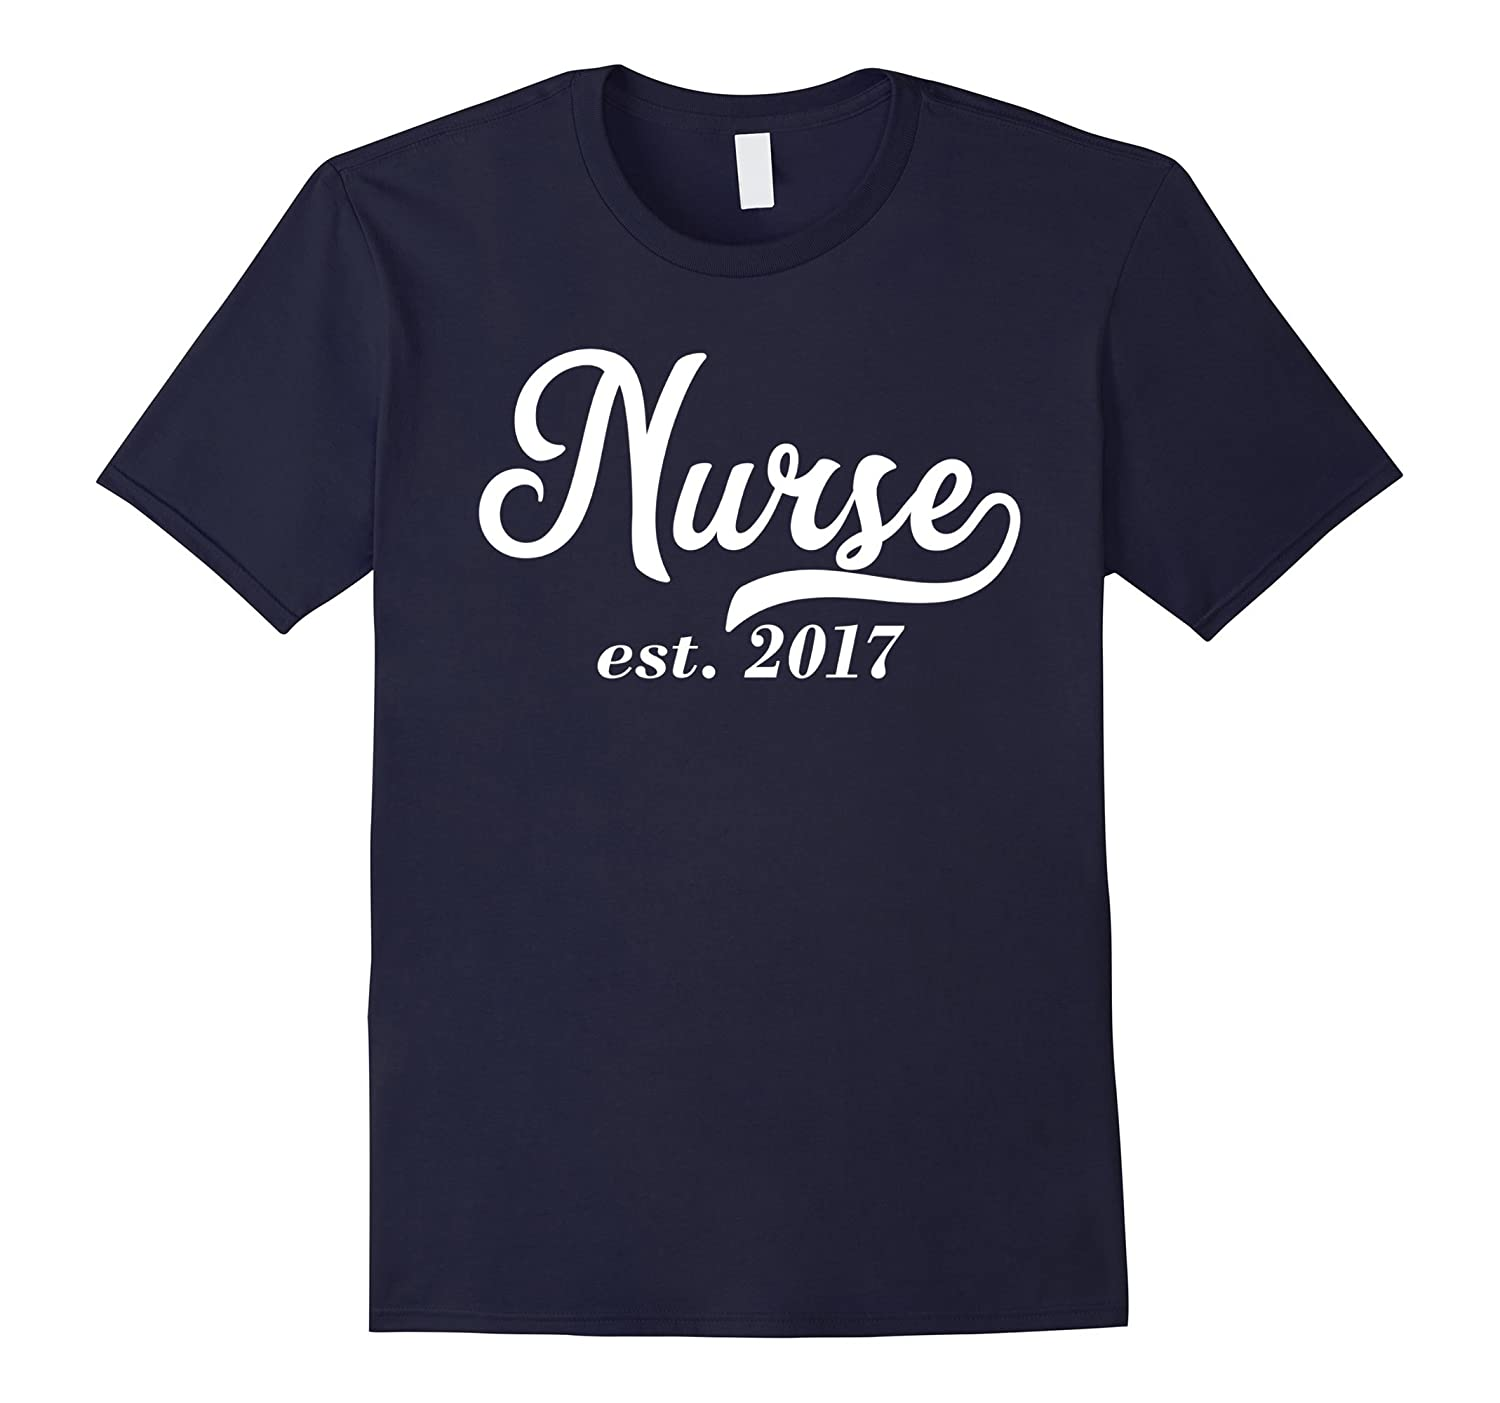 Graduation Gift for Nurses est 2017 - Nursery School-RT